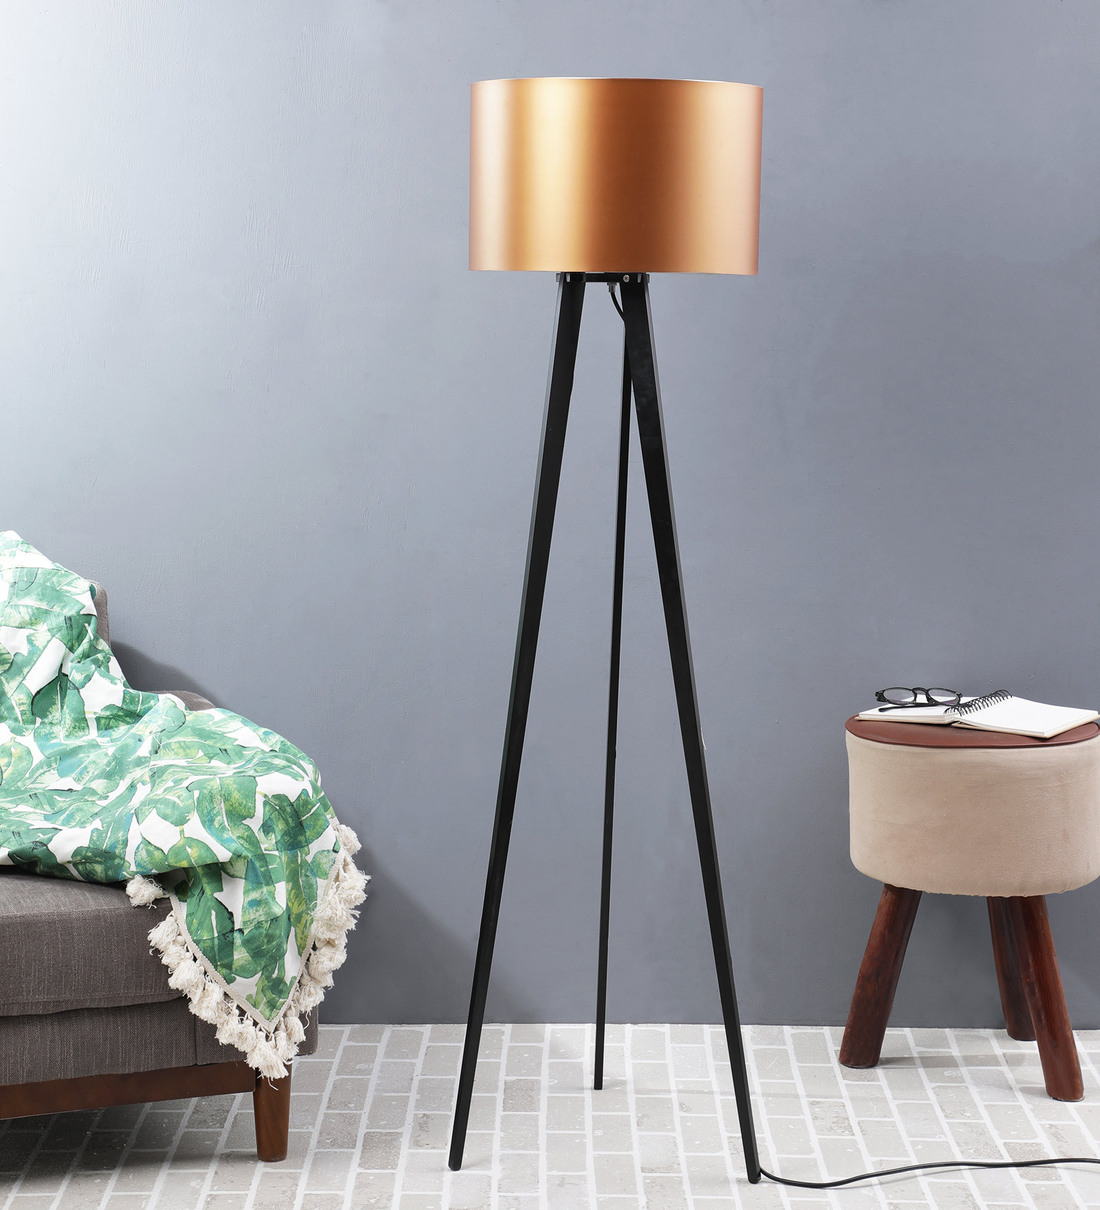 Buy Scarlet Gold Metal Shade Tripod Floor Lamp With Black Base By Casacraft Online Modern And Contemporary Floor Lamps Floor Lamps Lamps Lighting Pepperfry Product